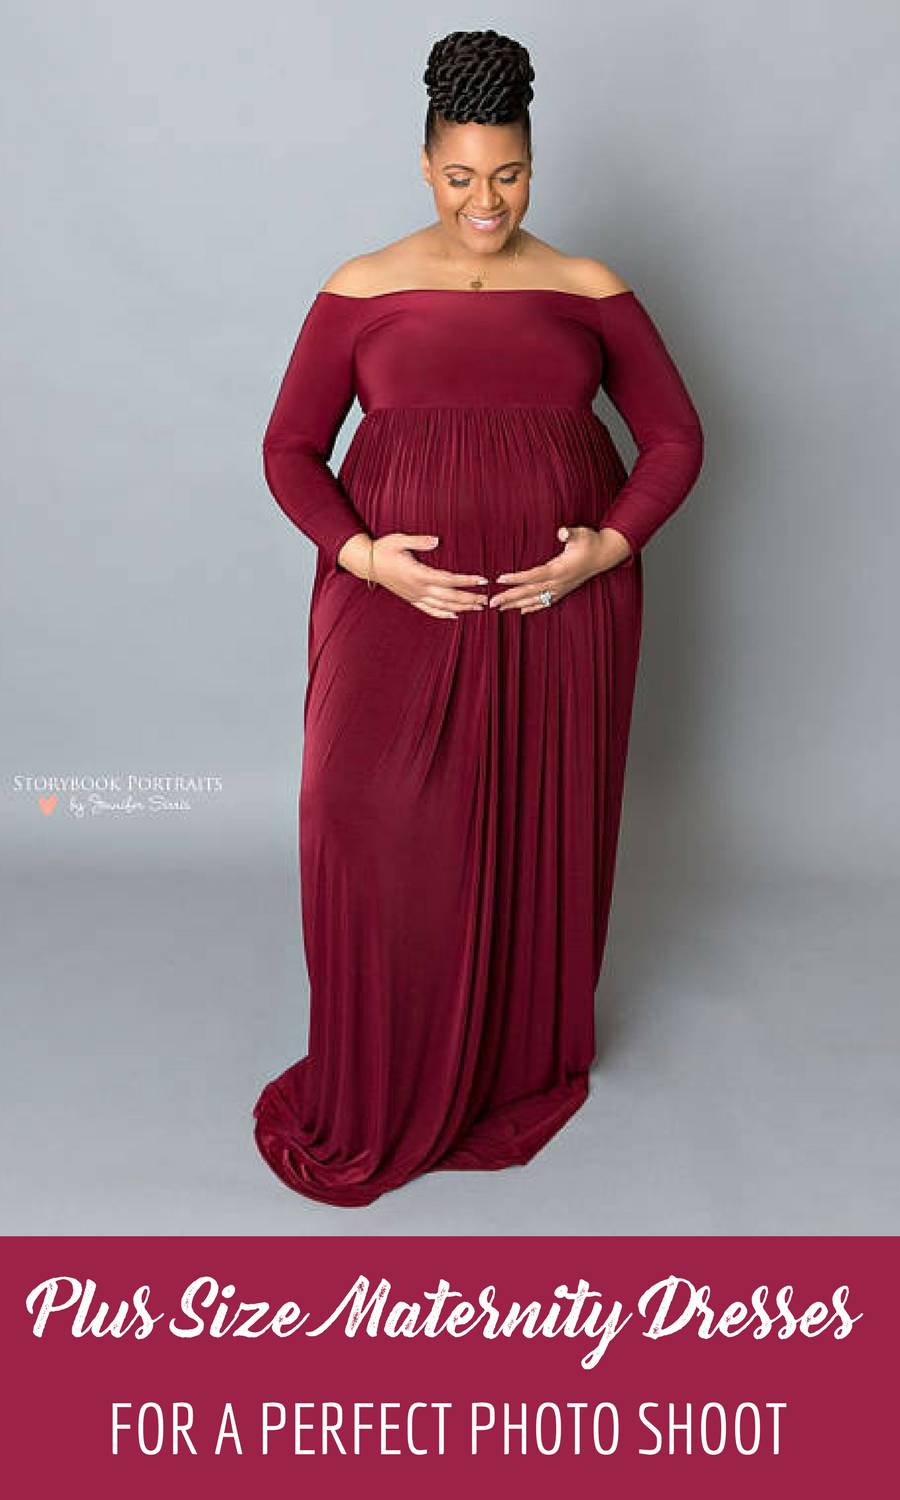 Pin on zz(Coming soon!) Plus Size and Pregnant